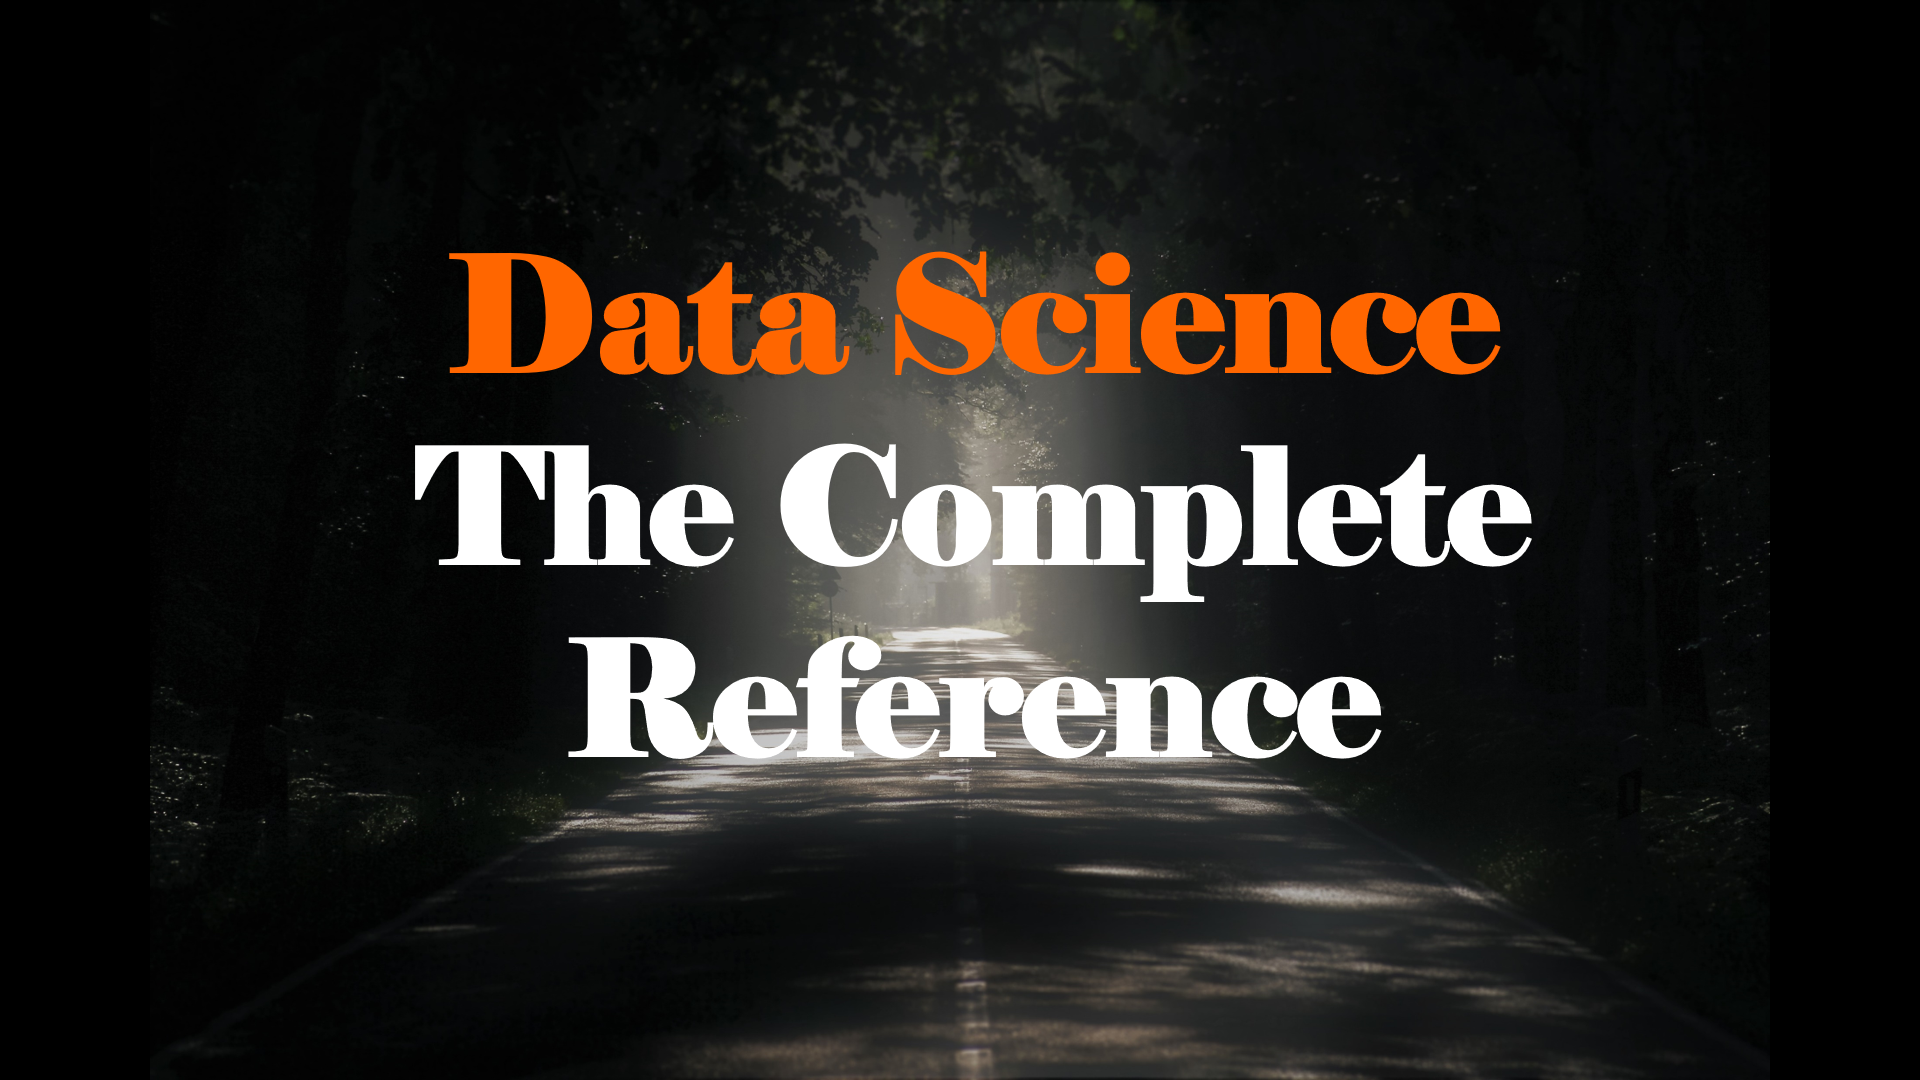 Data Science: The Complete Reference (Series)